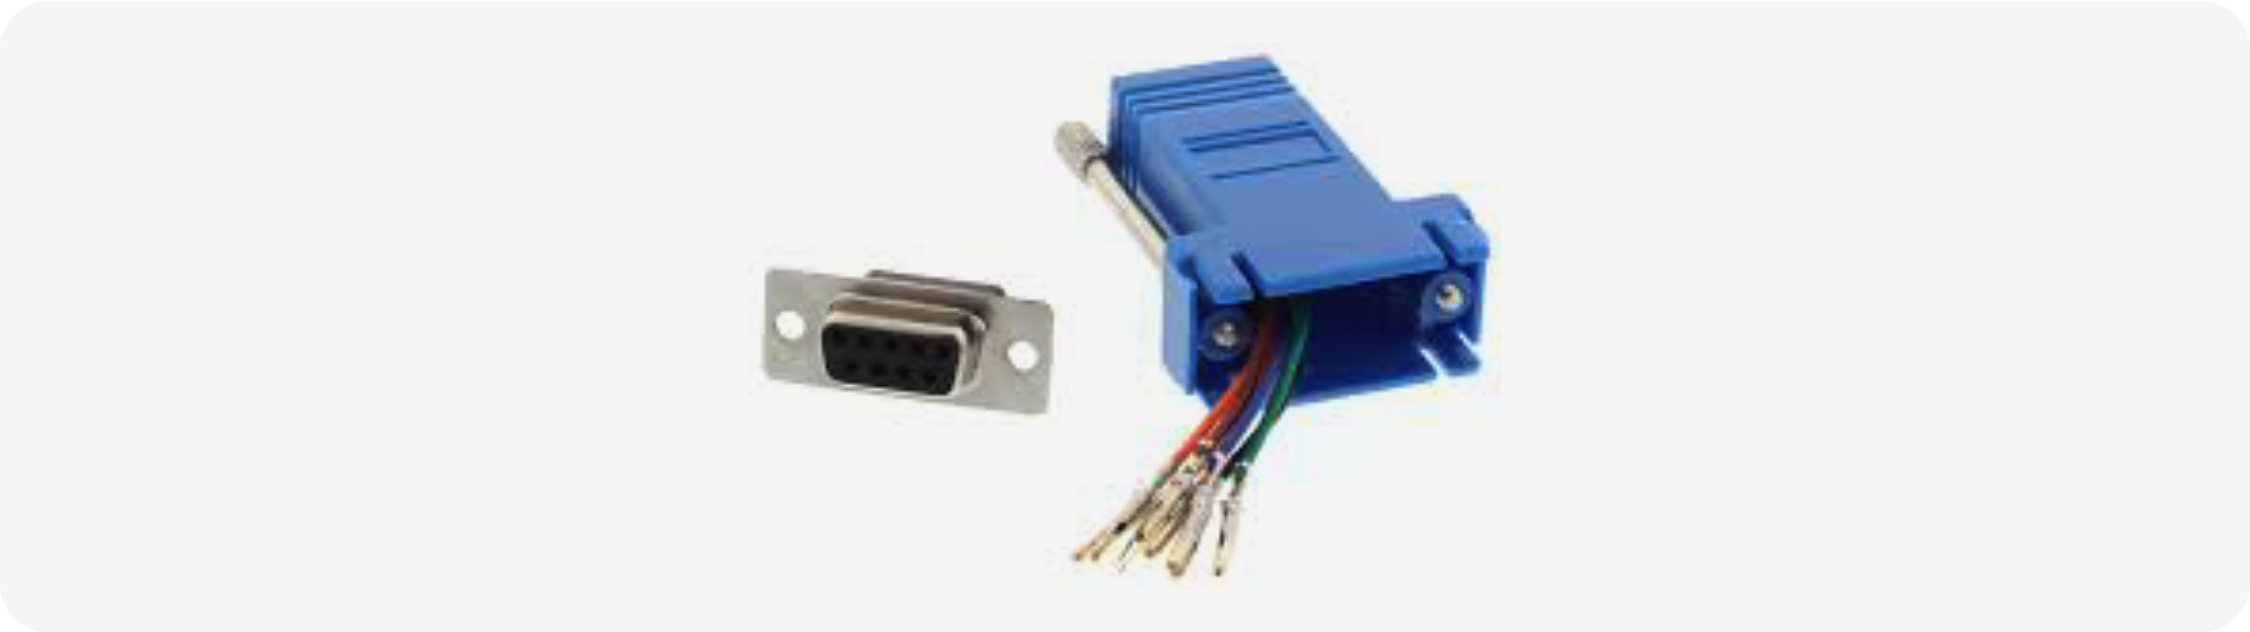 RJ45 to DB9 configurable adapter